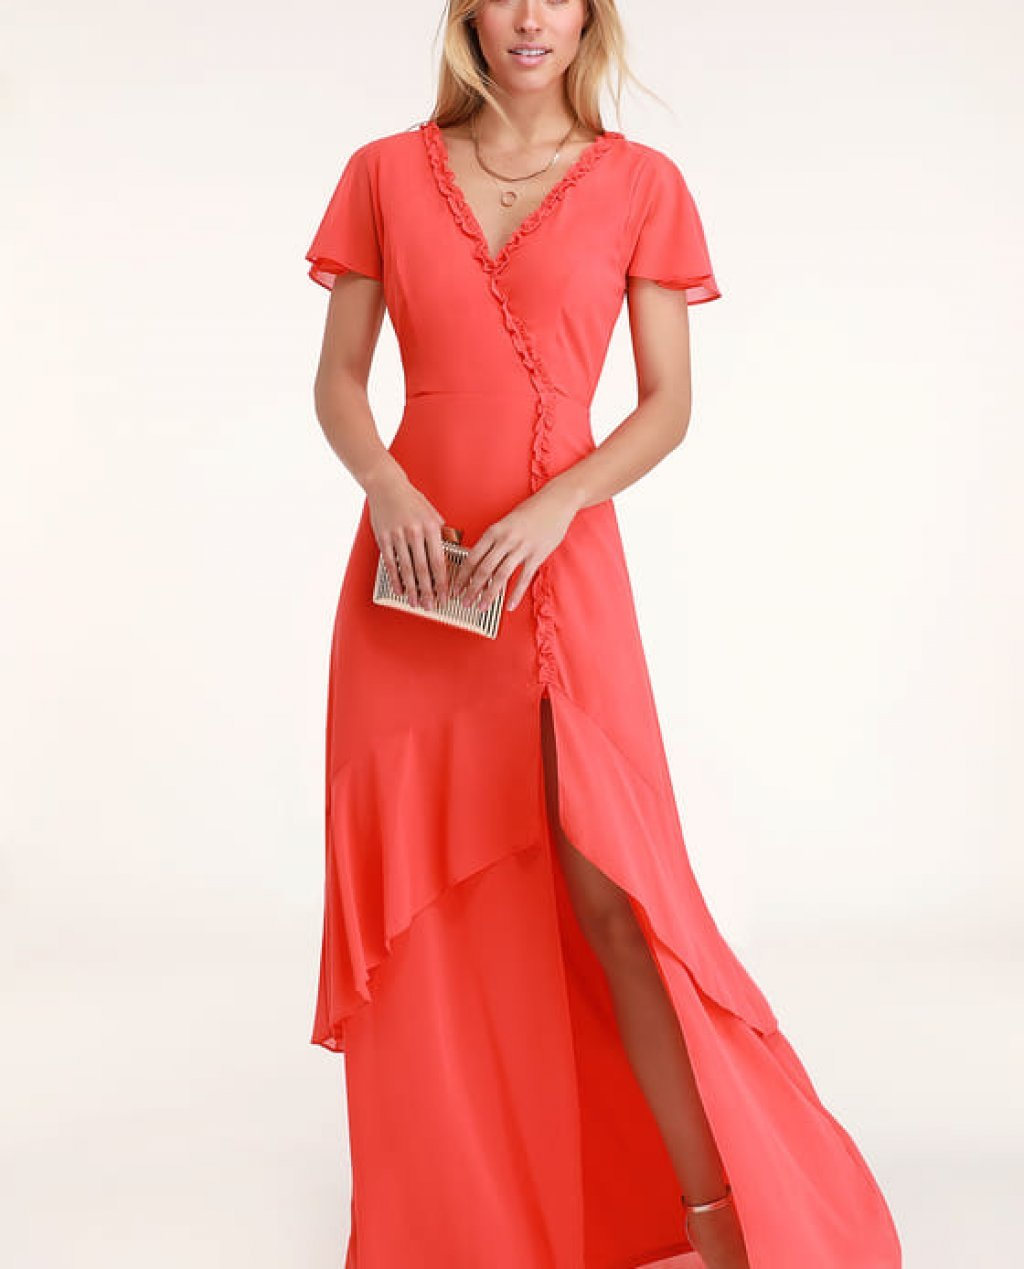 Pour the Champagne Coral Red Ruffled Backless Maxi Dress